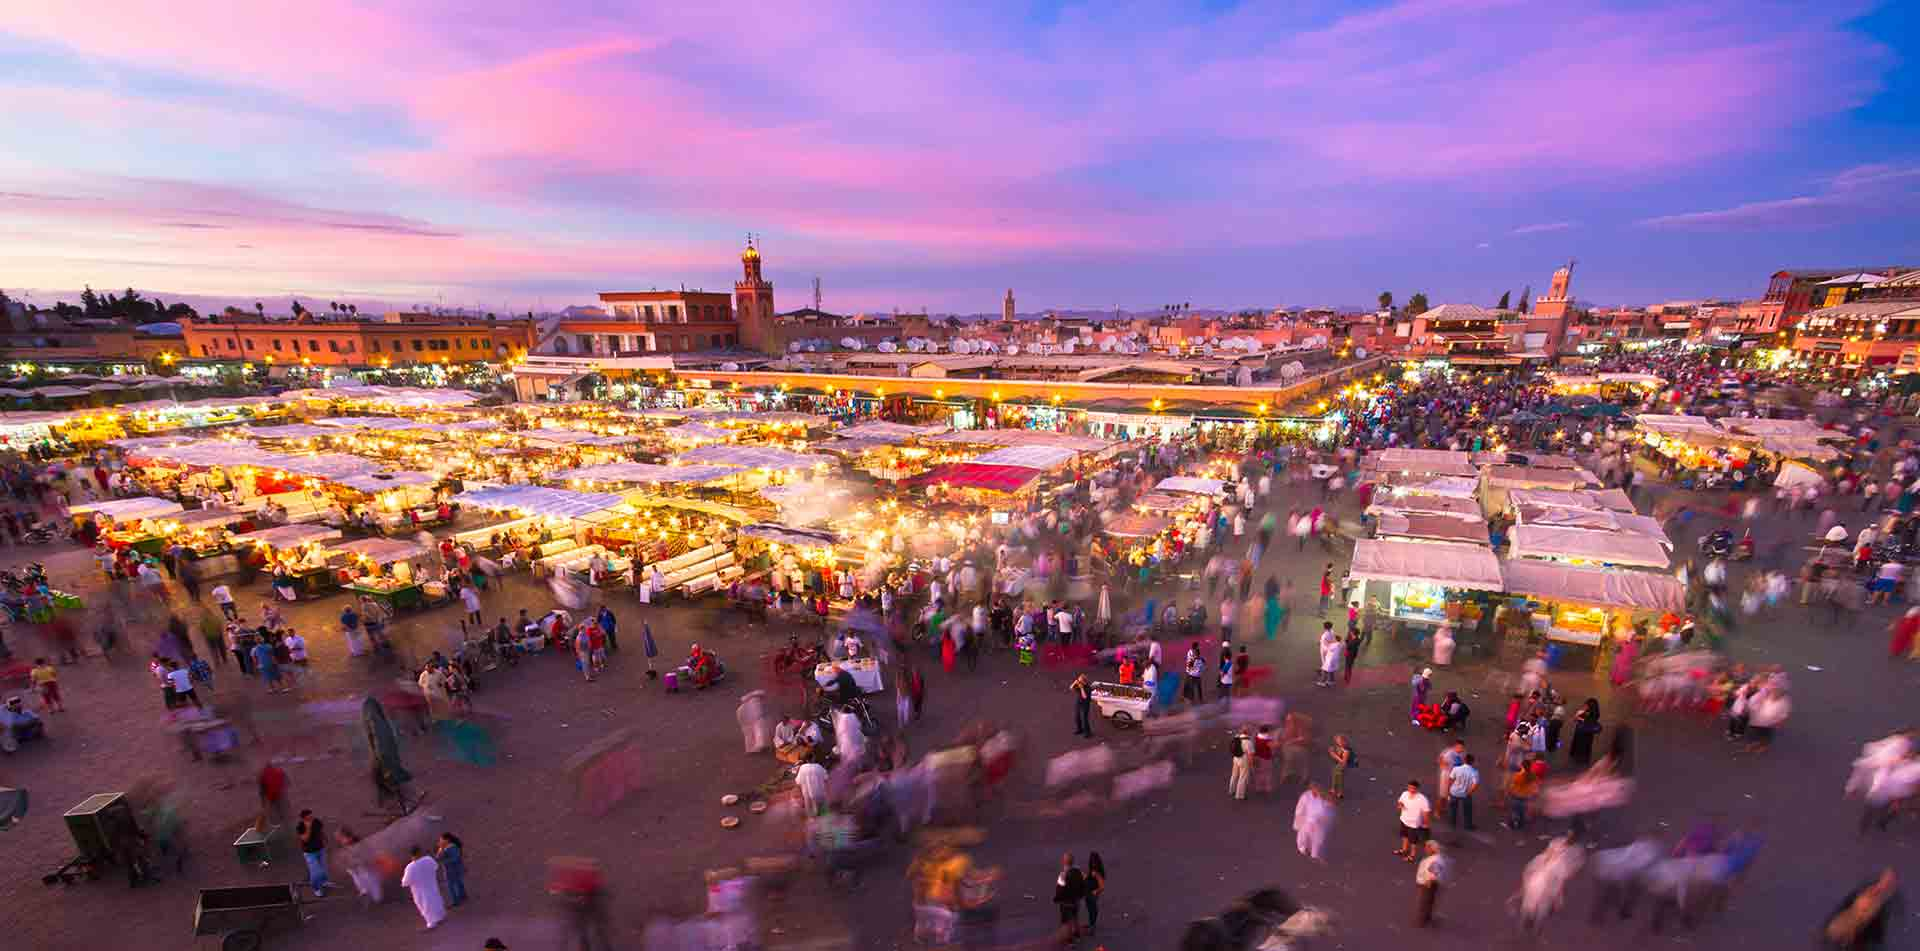 Market in Marrakesh at Night, Morocco